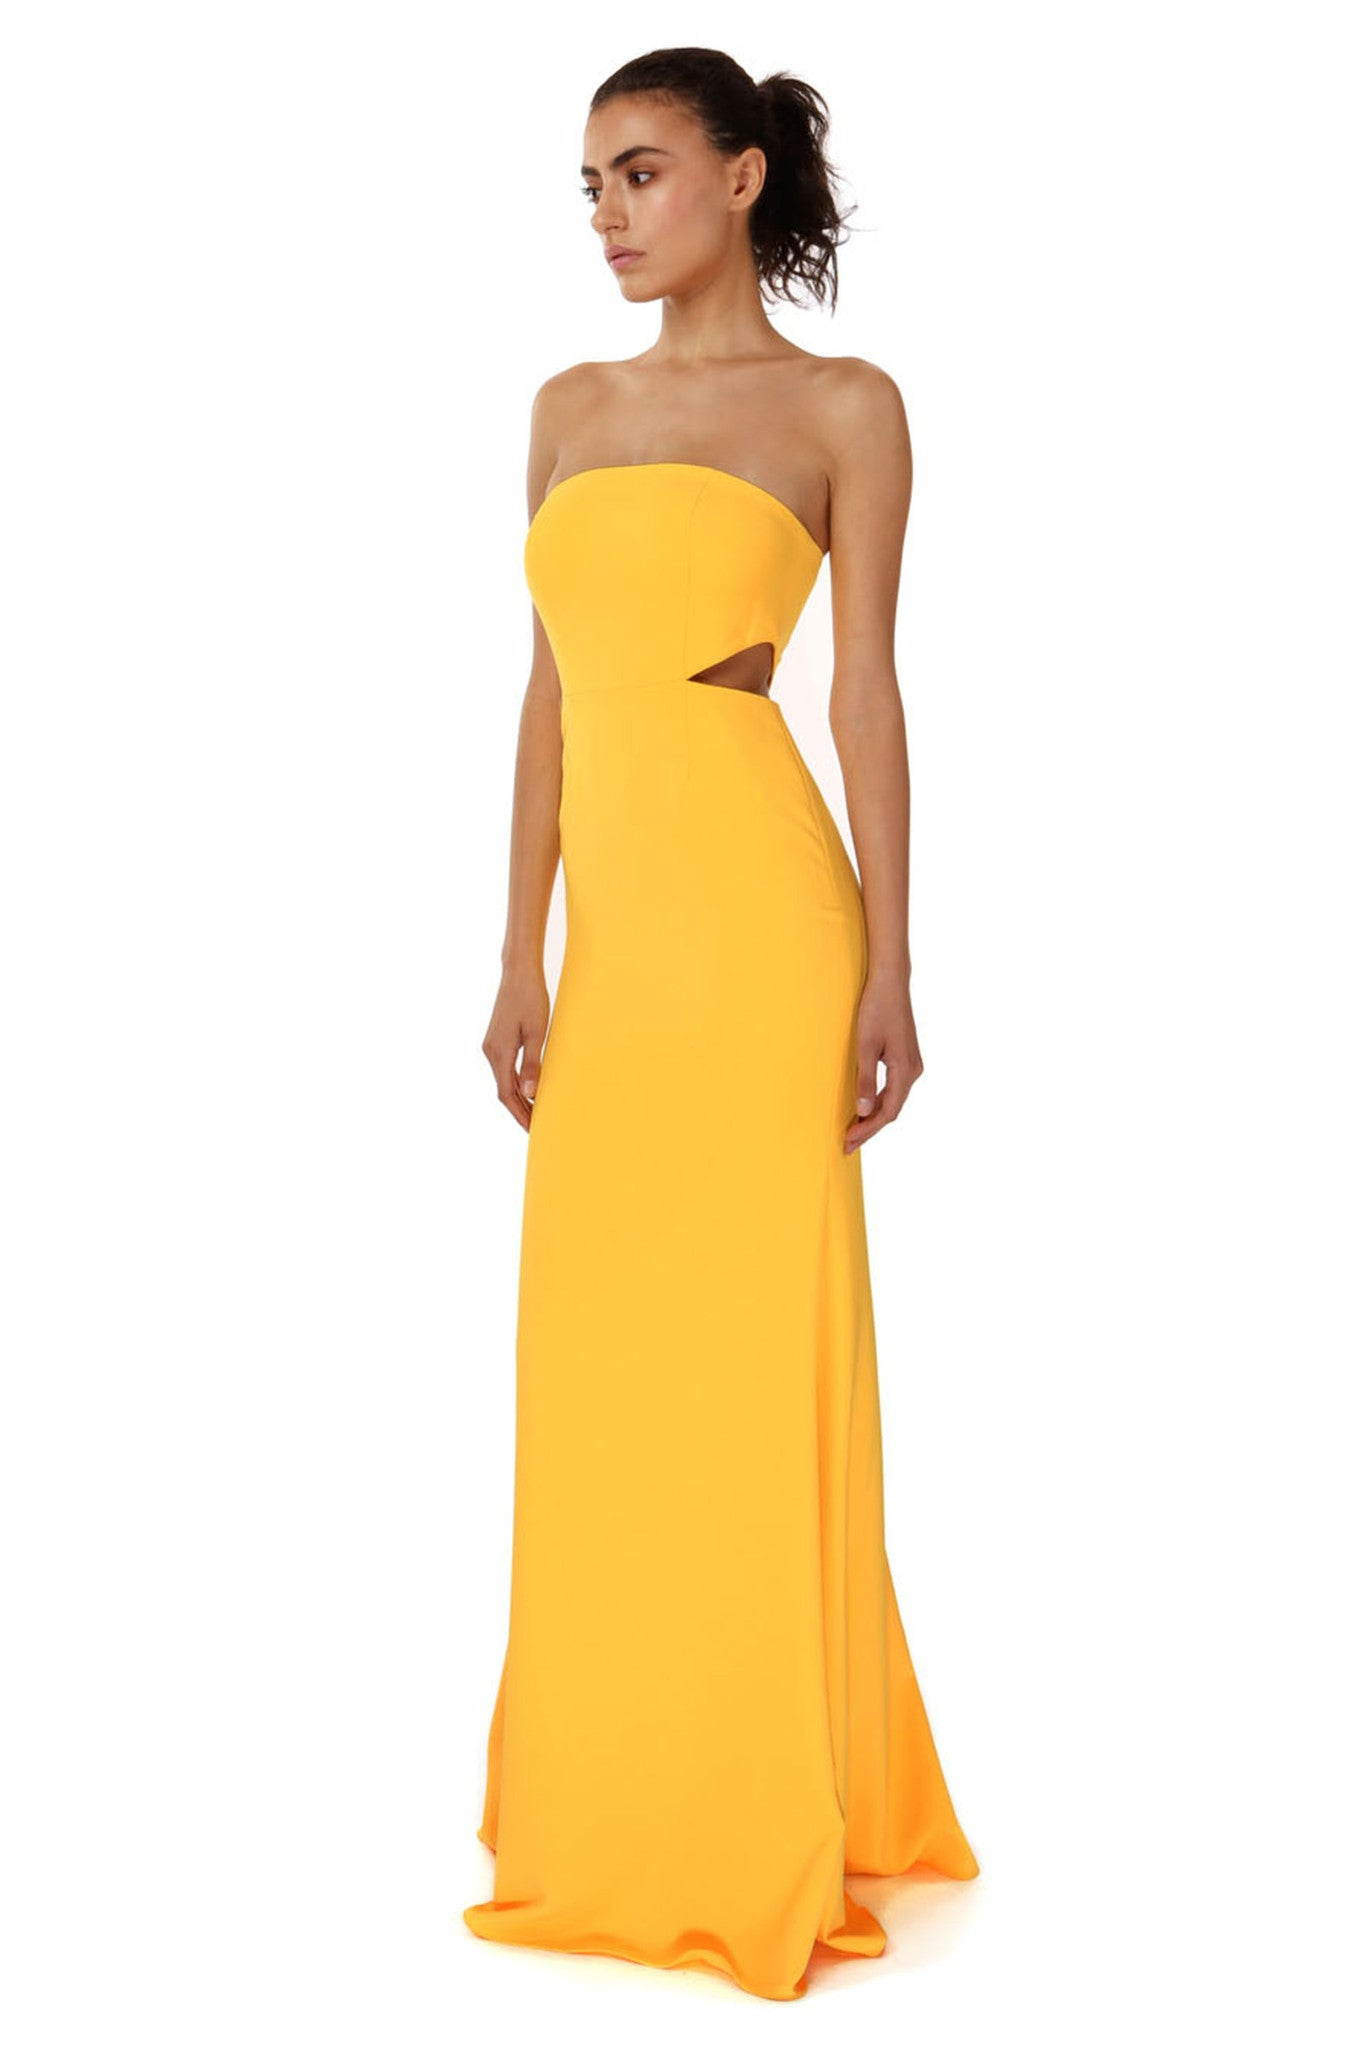 Jay Godfrey Sunflower Strapless Cut-Out Gown - Side View